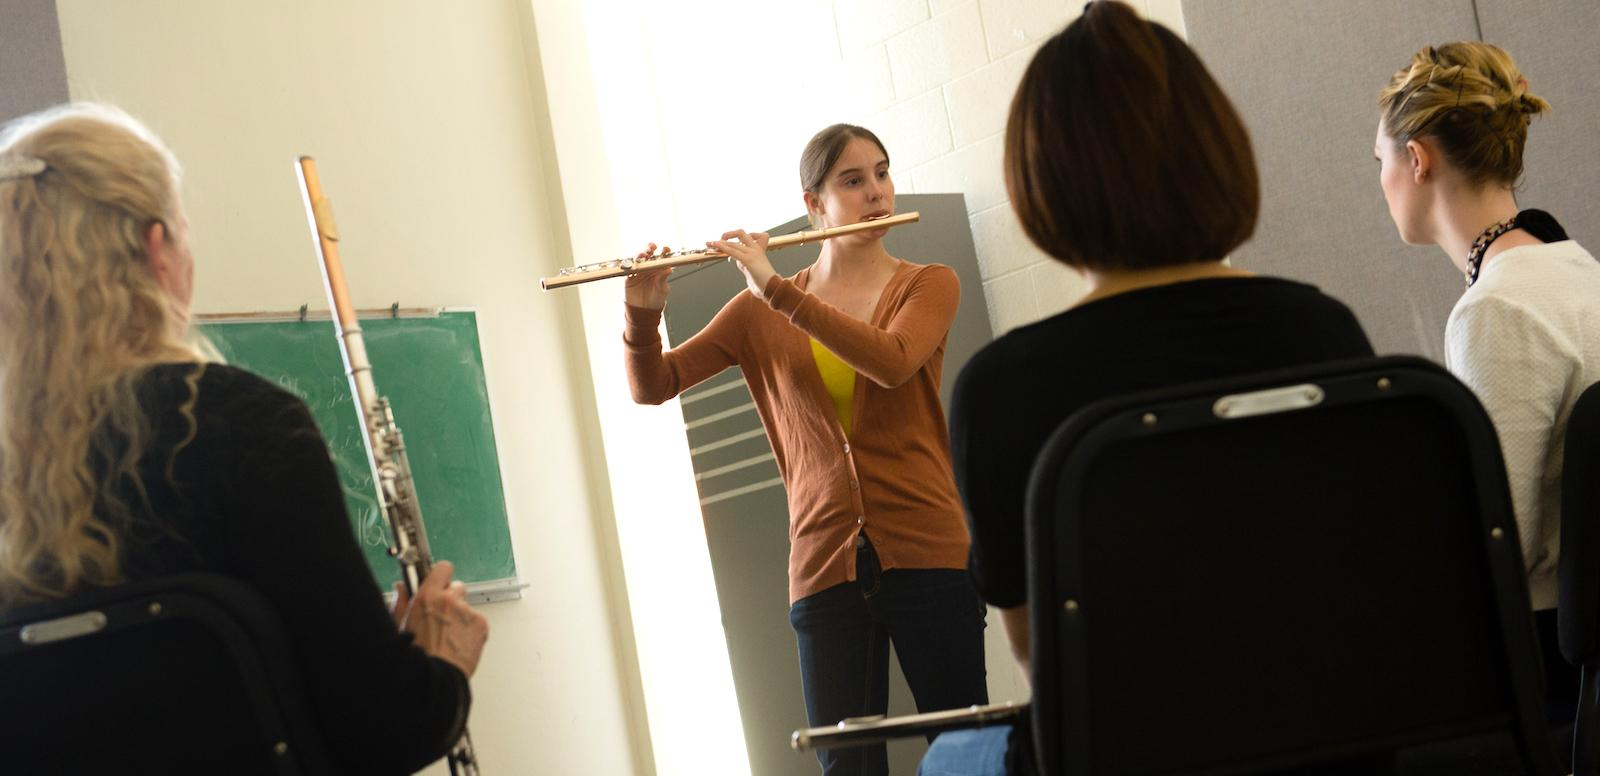 group of students and professor observing flute player